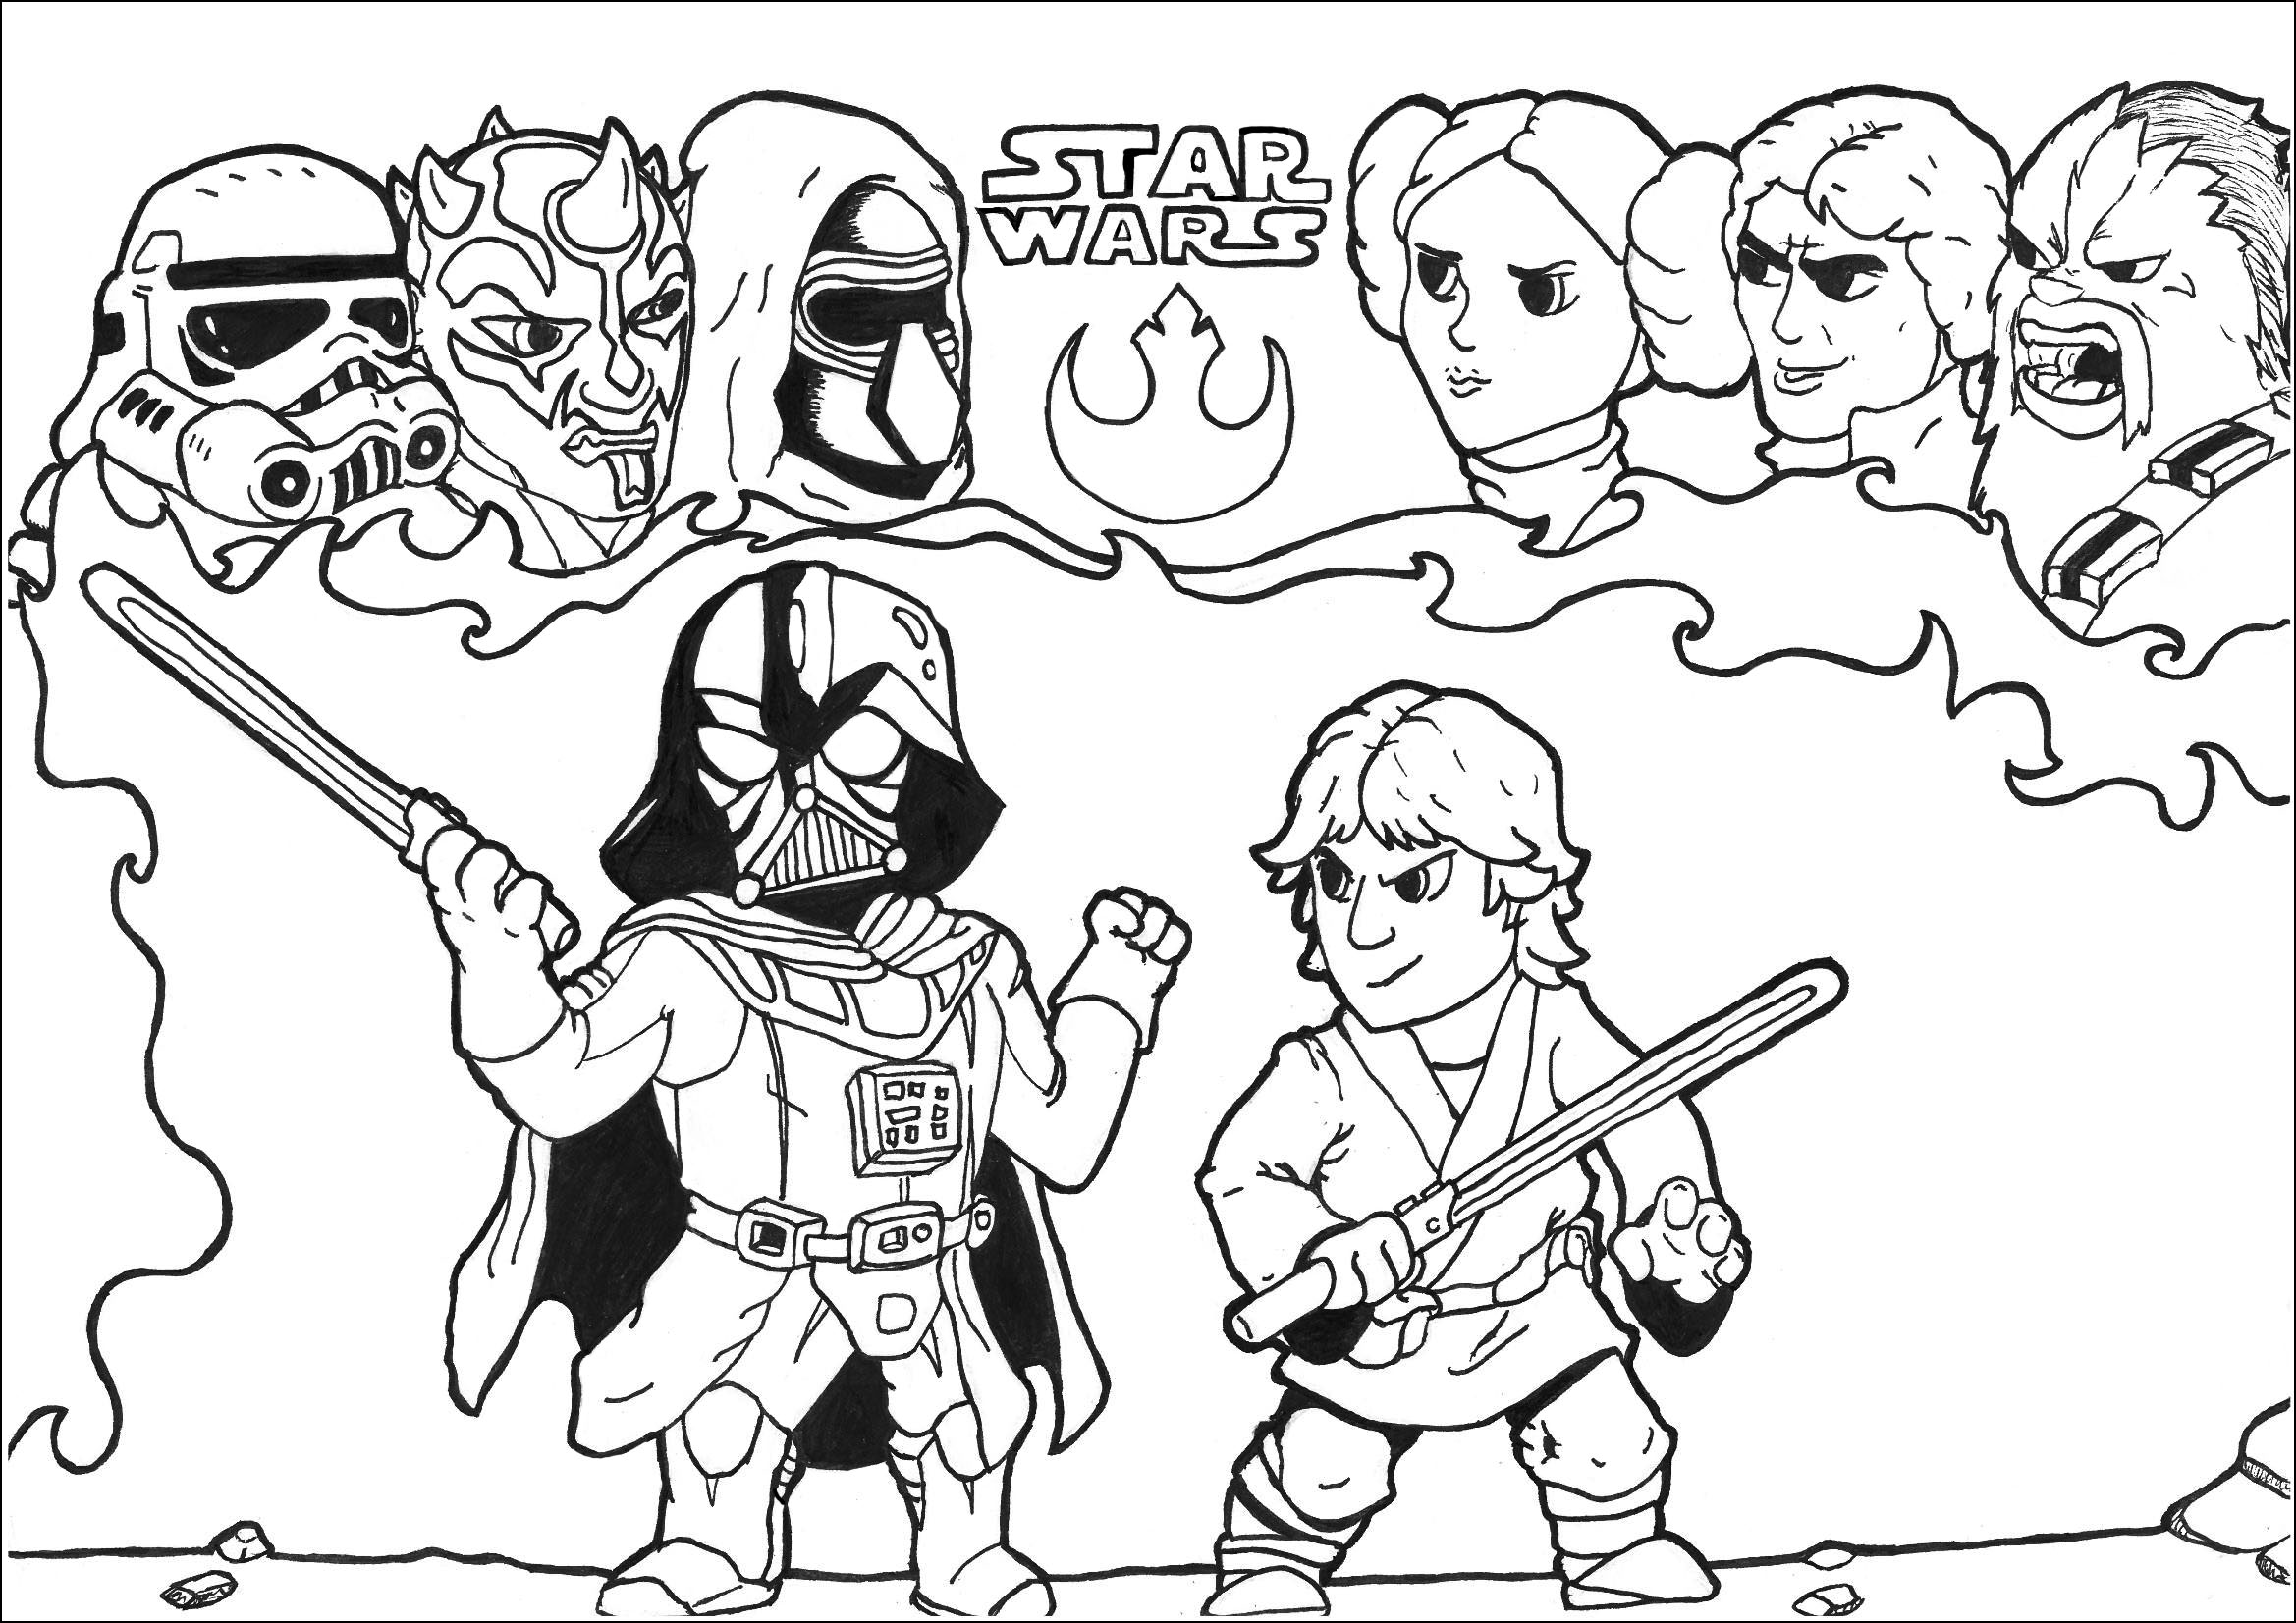 Coloring Page Inspired By The Cult Movie Star Wars Featuring A Fight Between Luke Skywalker